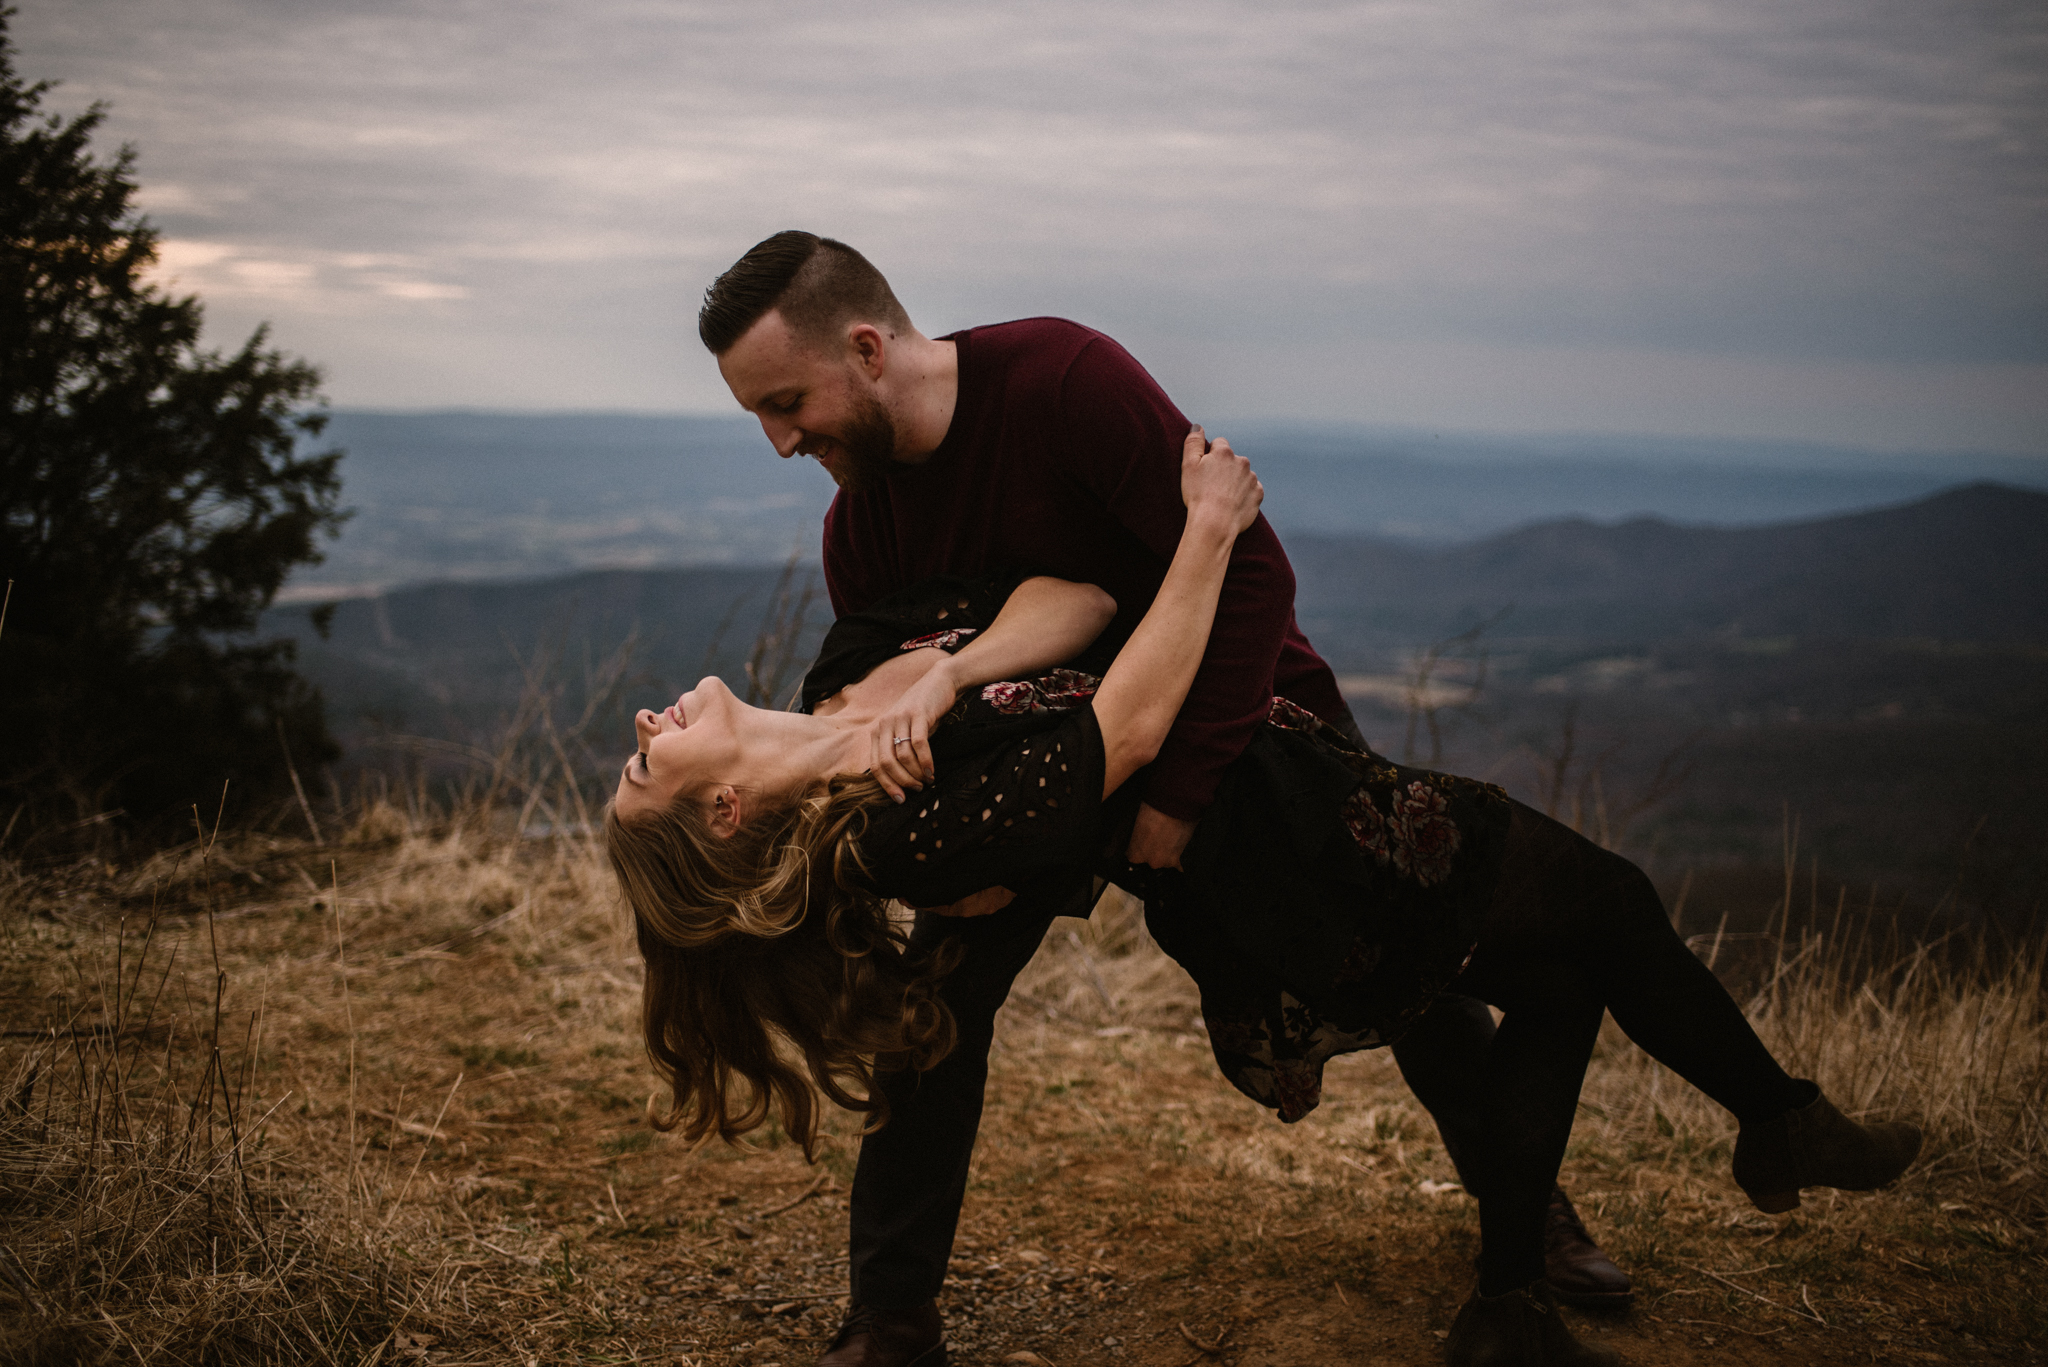 Nicole and Victor - Shenandoah National Park Engagement Photography - Blue Ridge Mountains Adventure Photography - White Sails Creative Photography_19.jpg